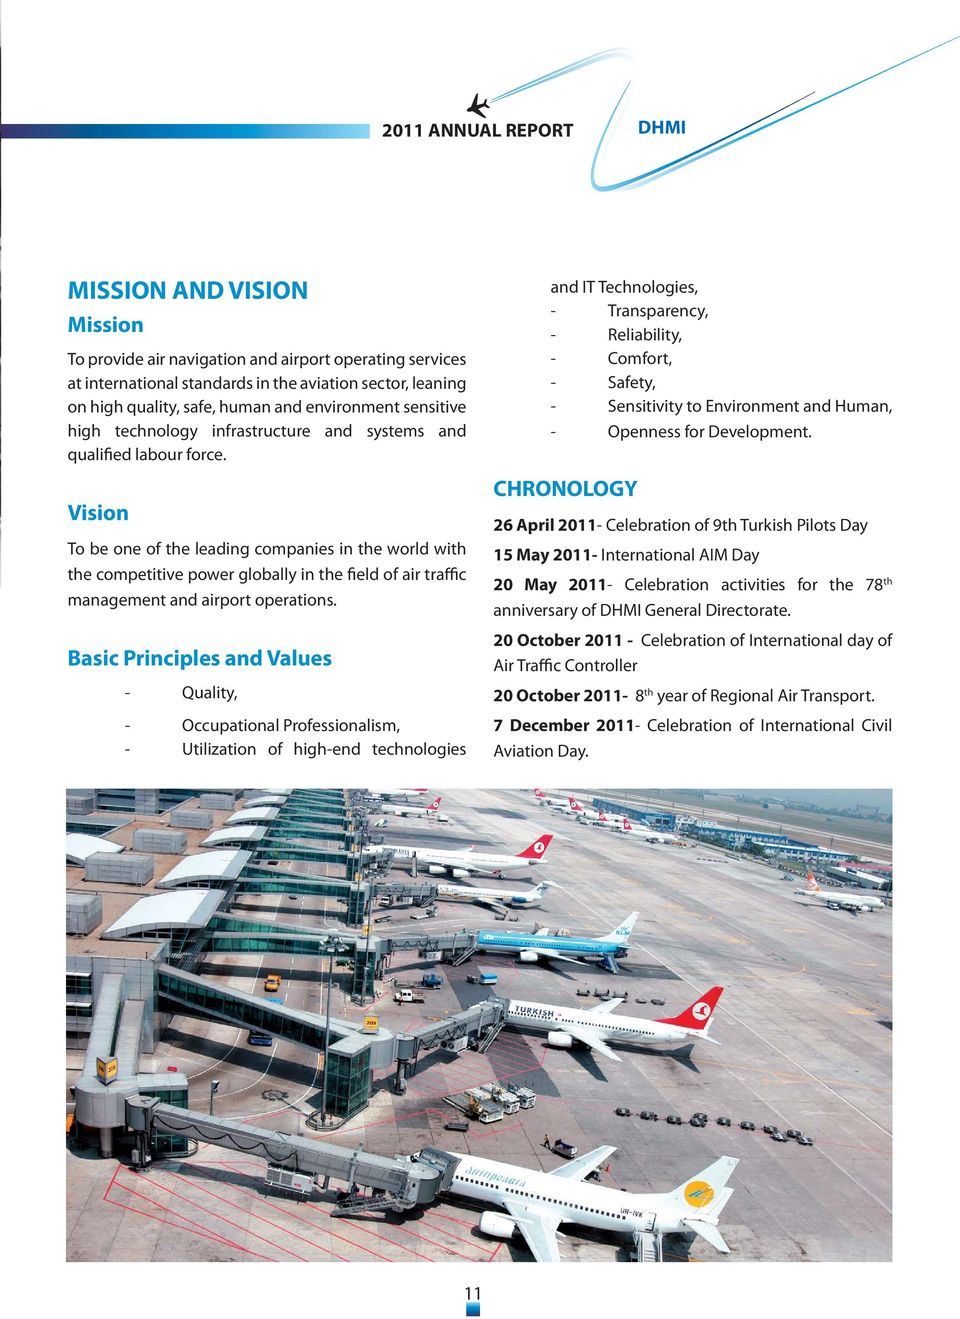 Vision To be one of the leading companies in the world with the competitive power globally in the field of air traffic management and airport operations.